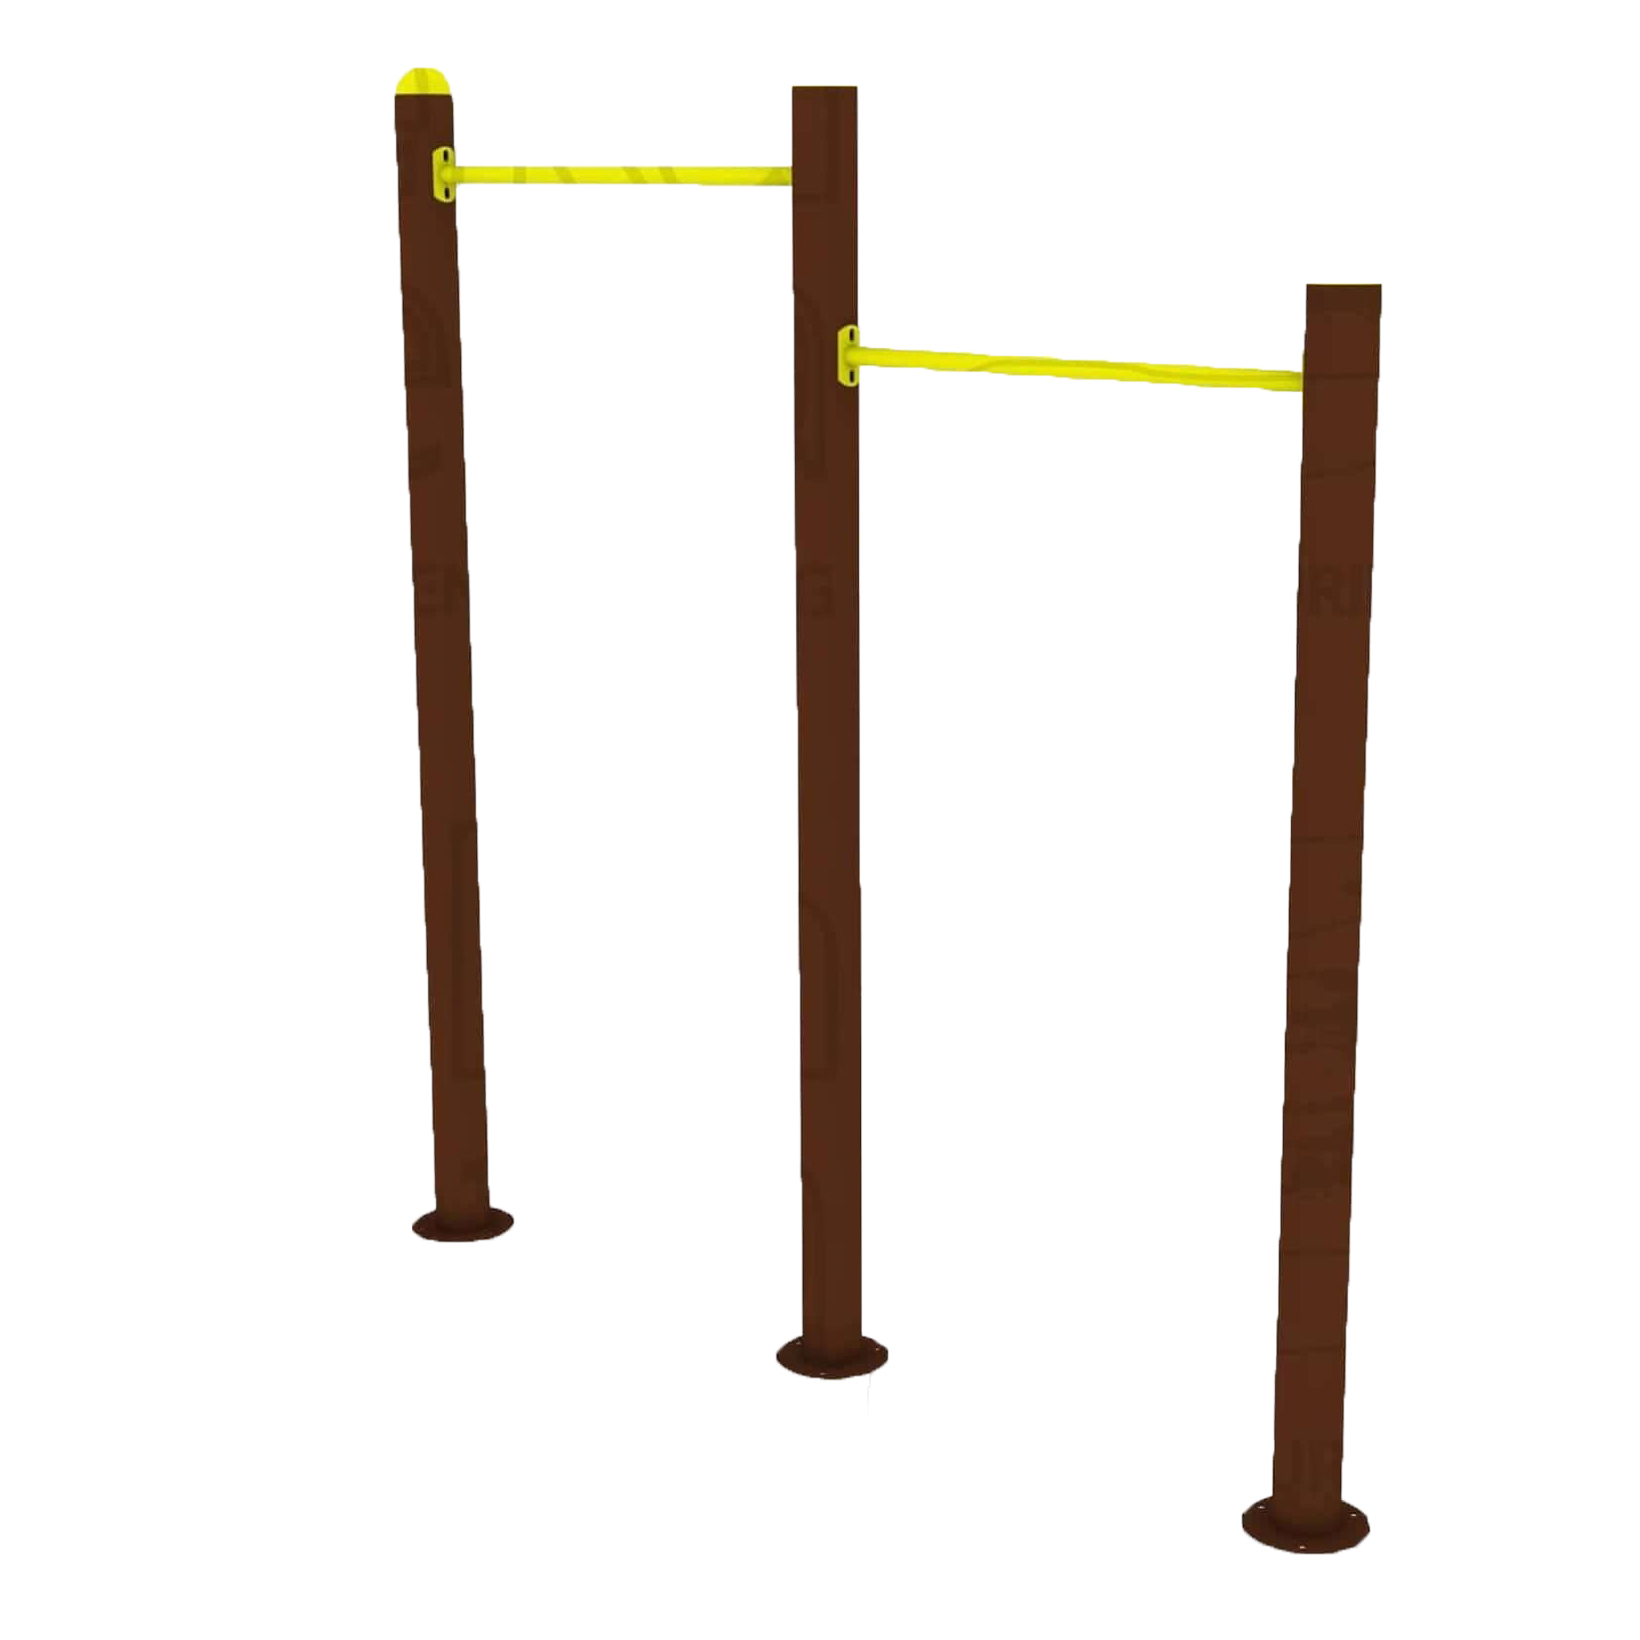 Chin Up Bar Crivit: Moodie Outdoor Products